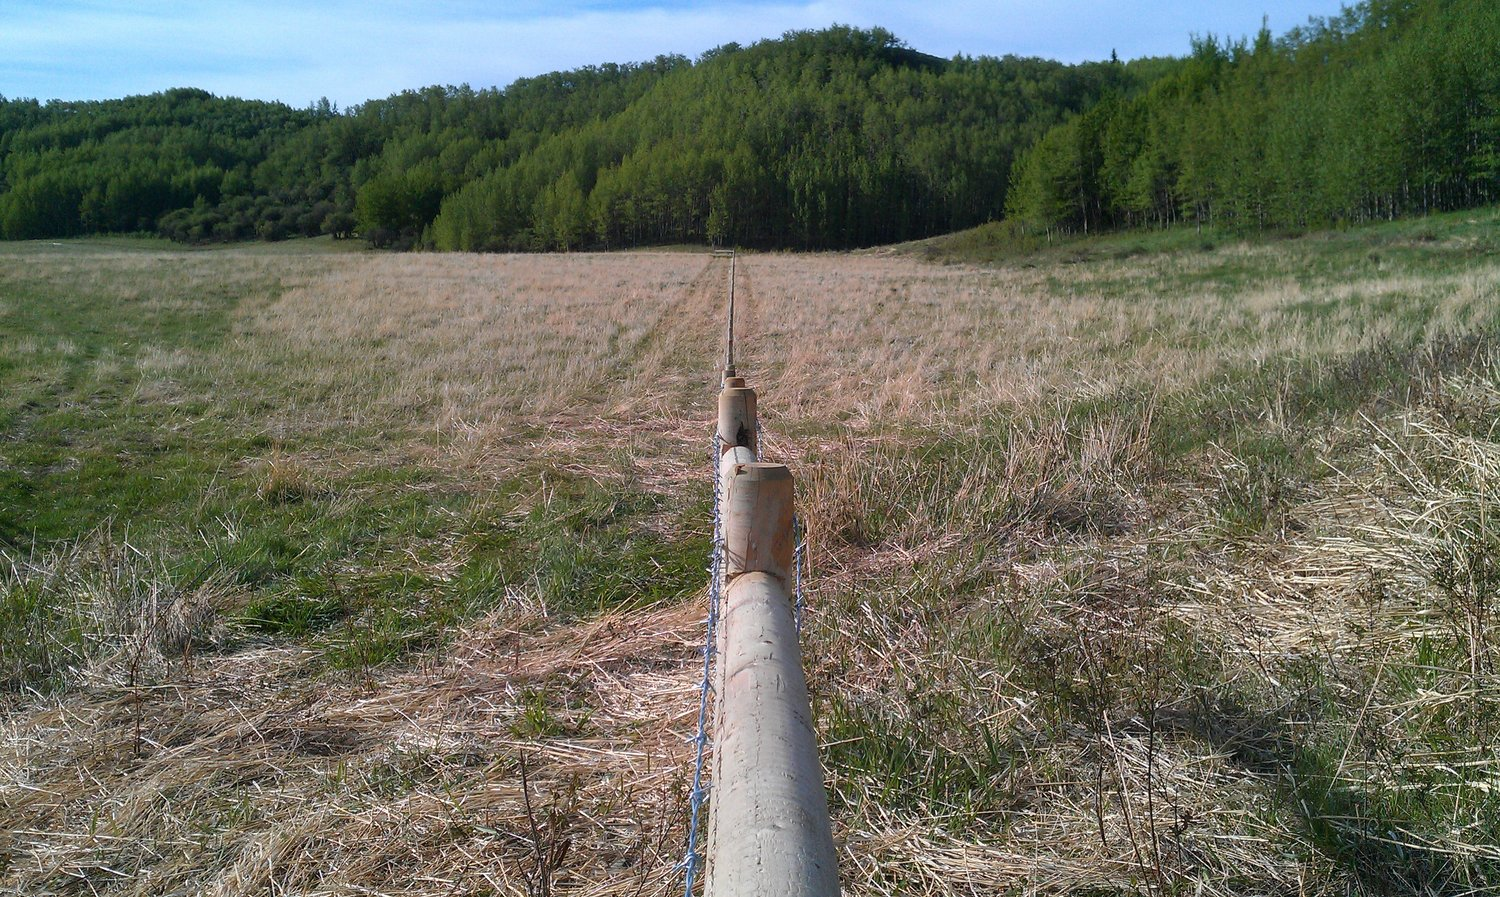 barbed-wire-fence-wildwestfencing.jpg